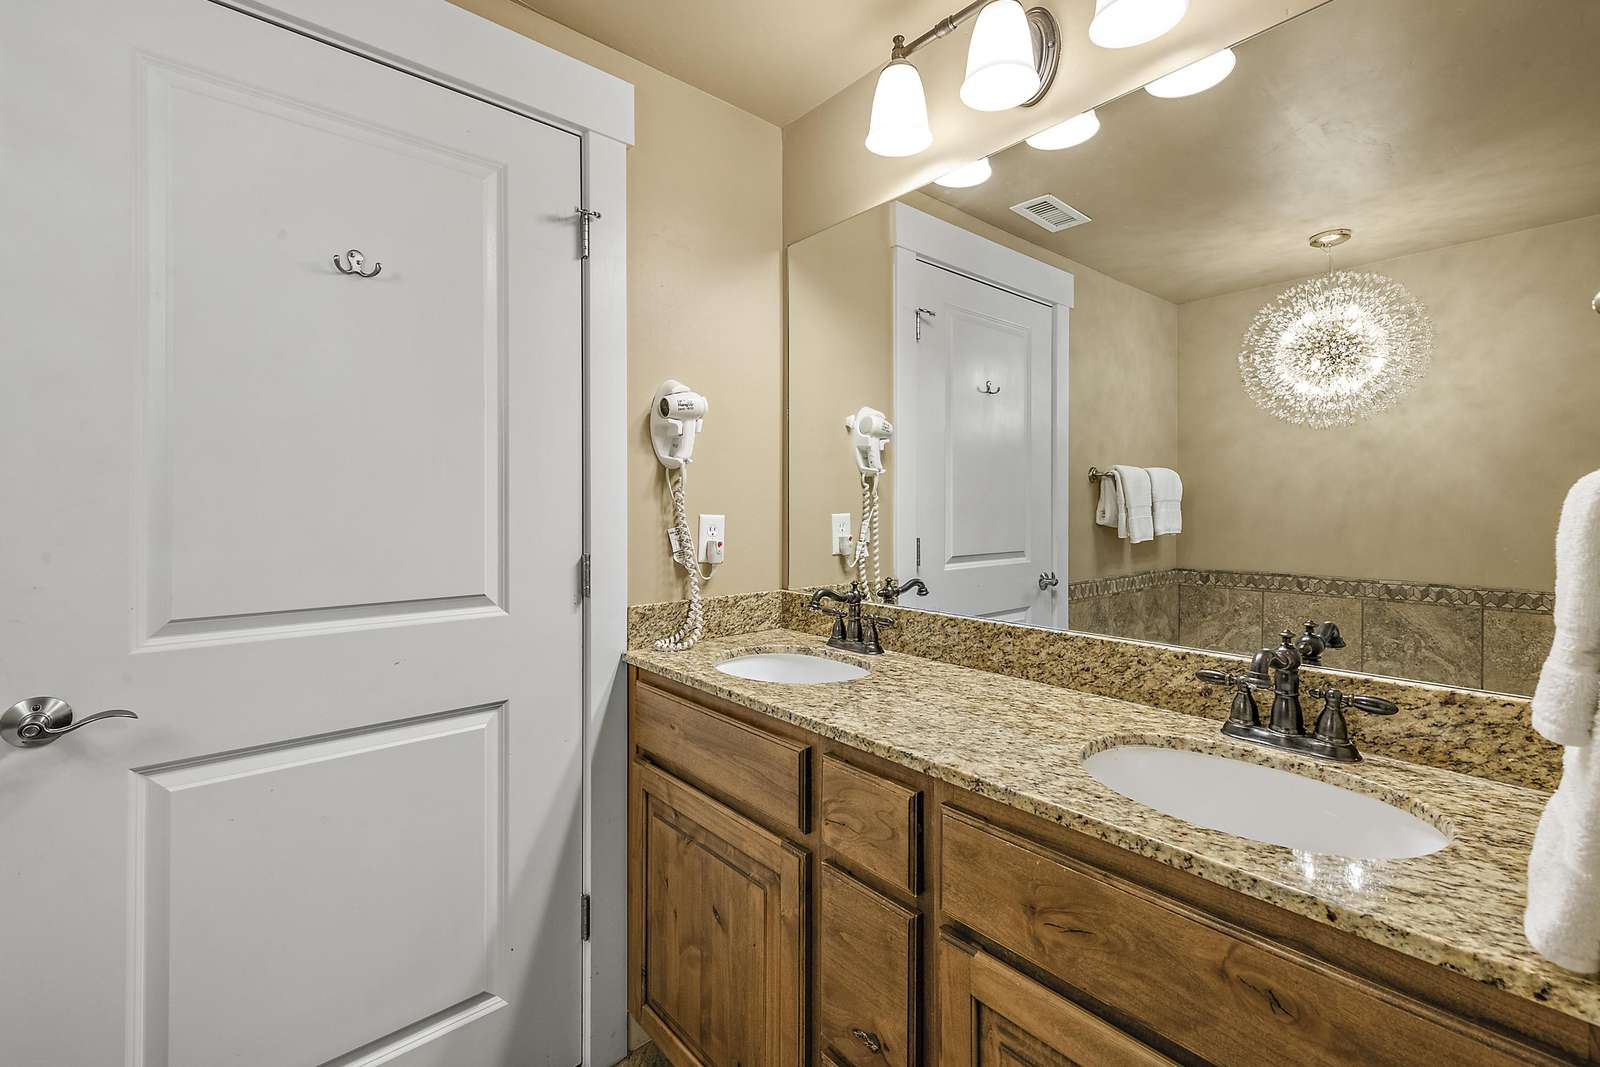 Double sink with plenty of space